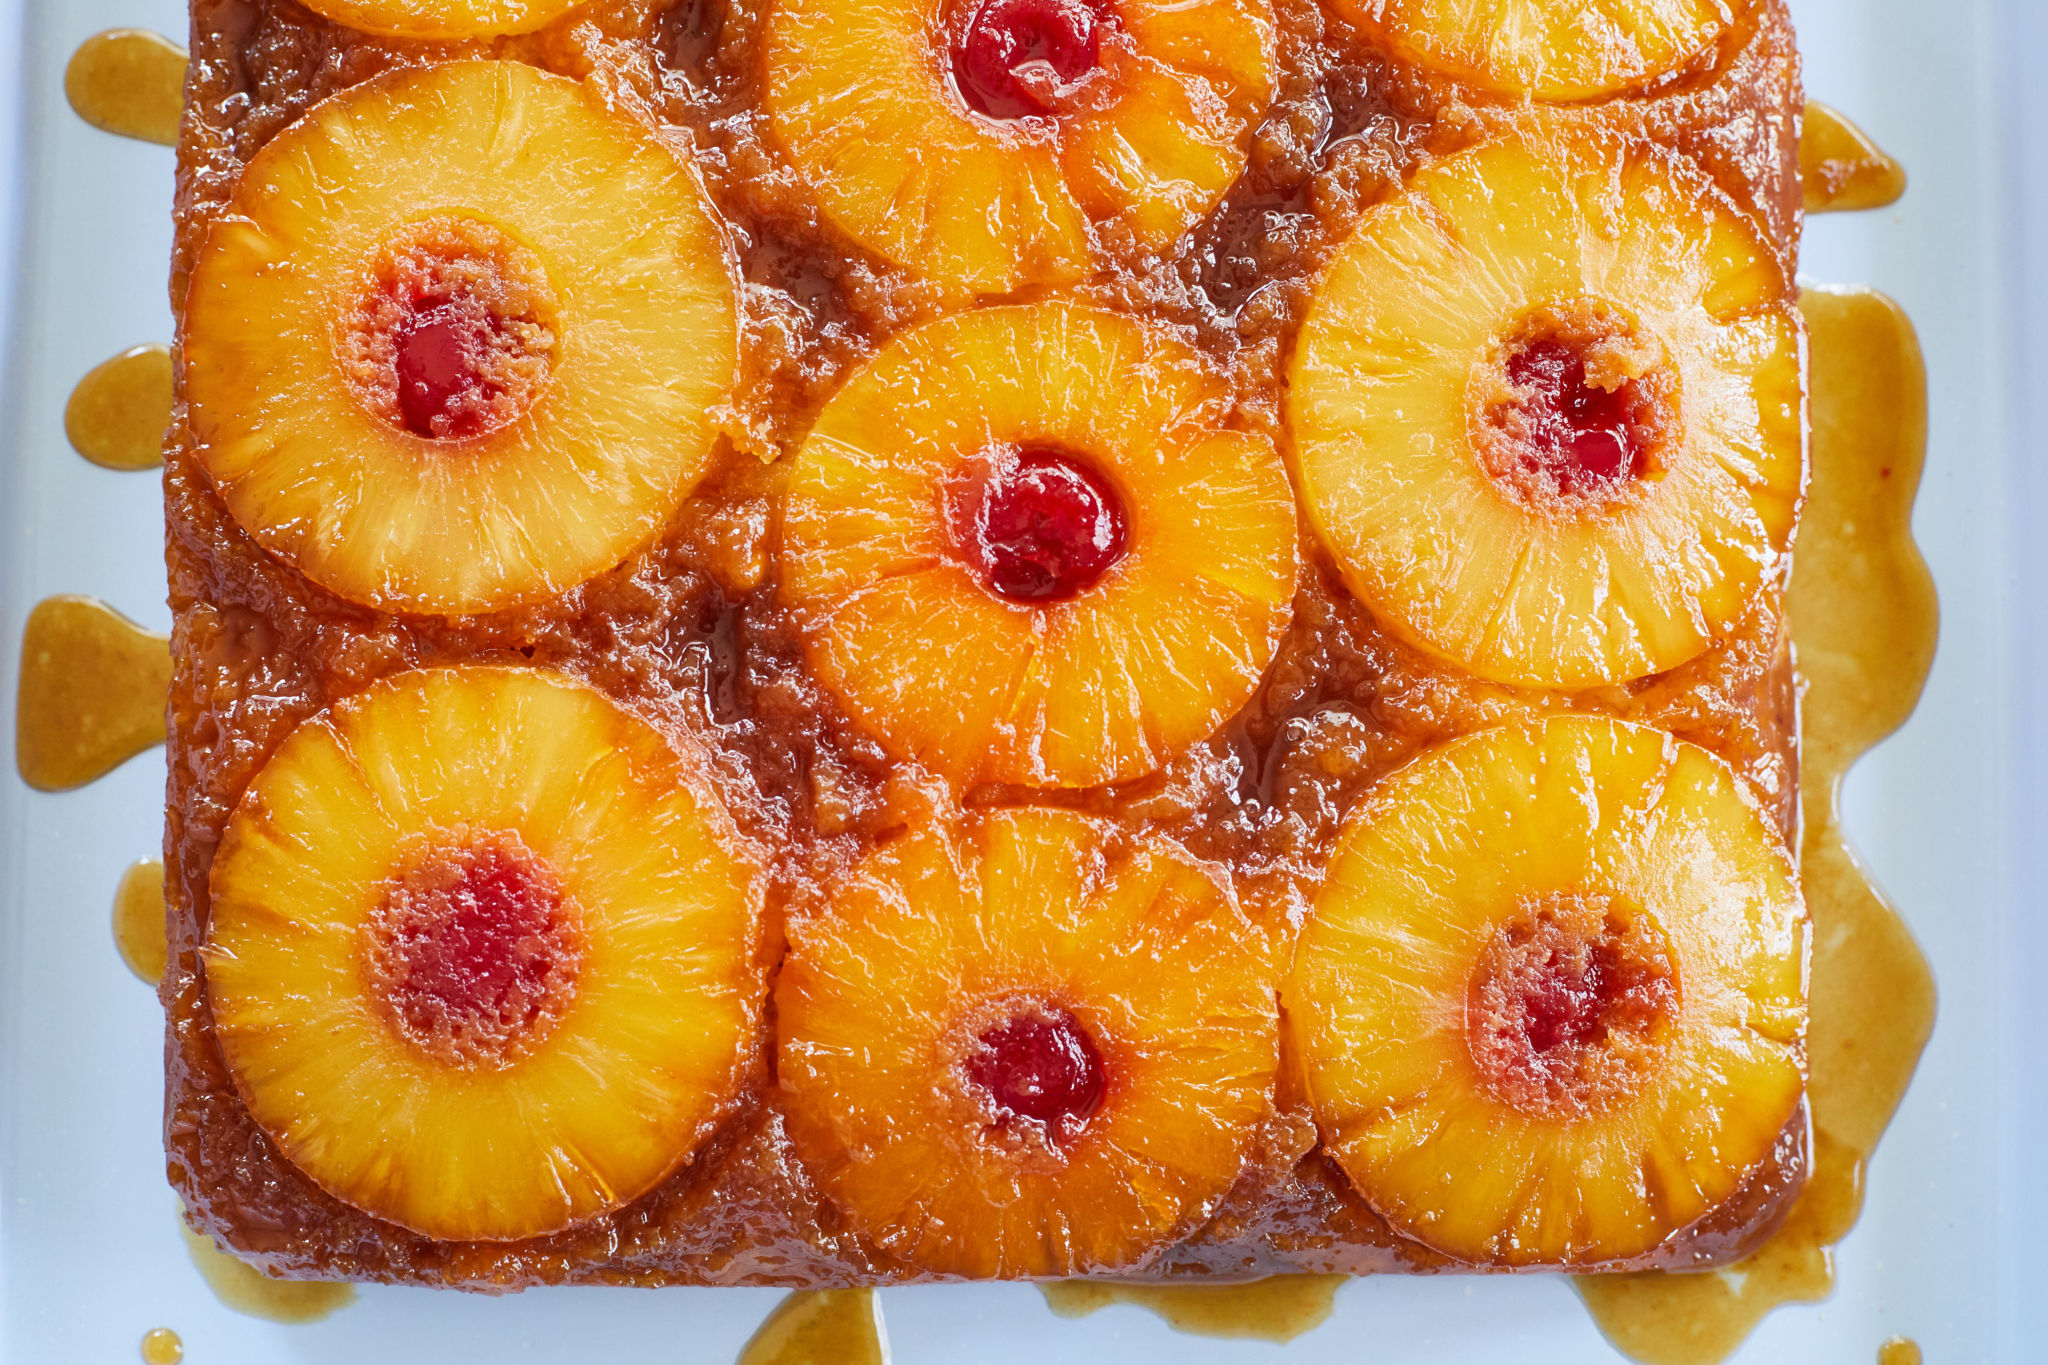 Top-down view of my pineapple upside down cake.